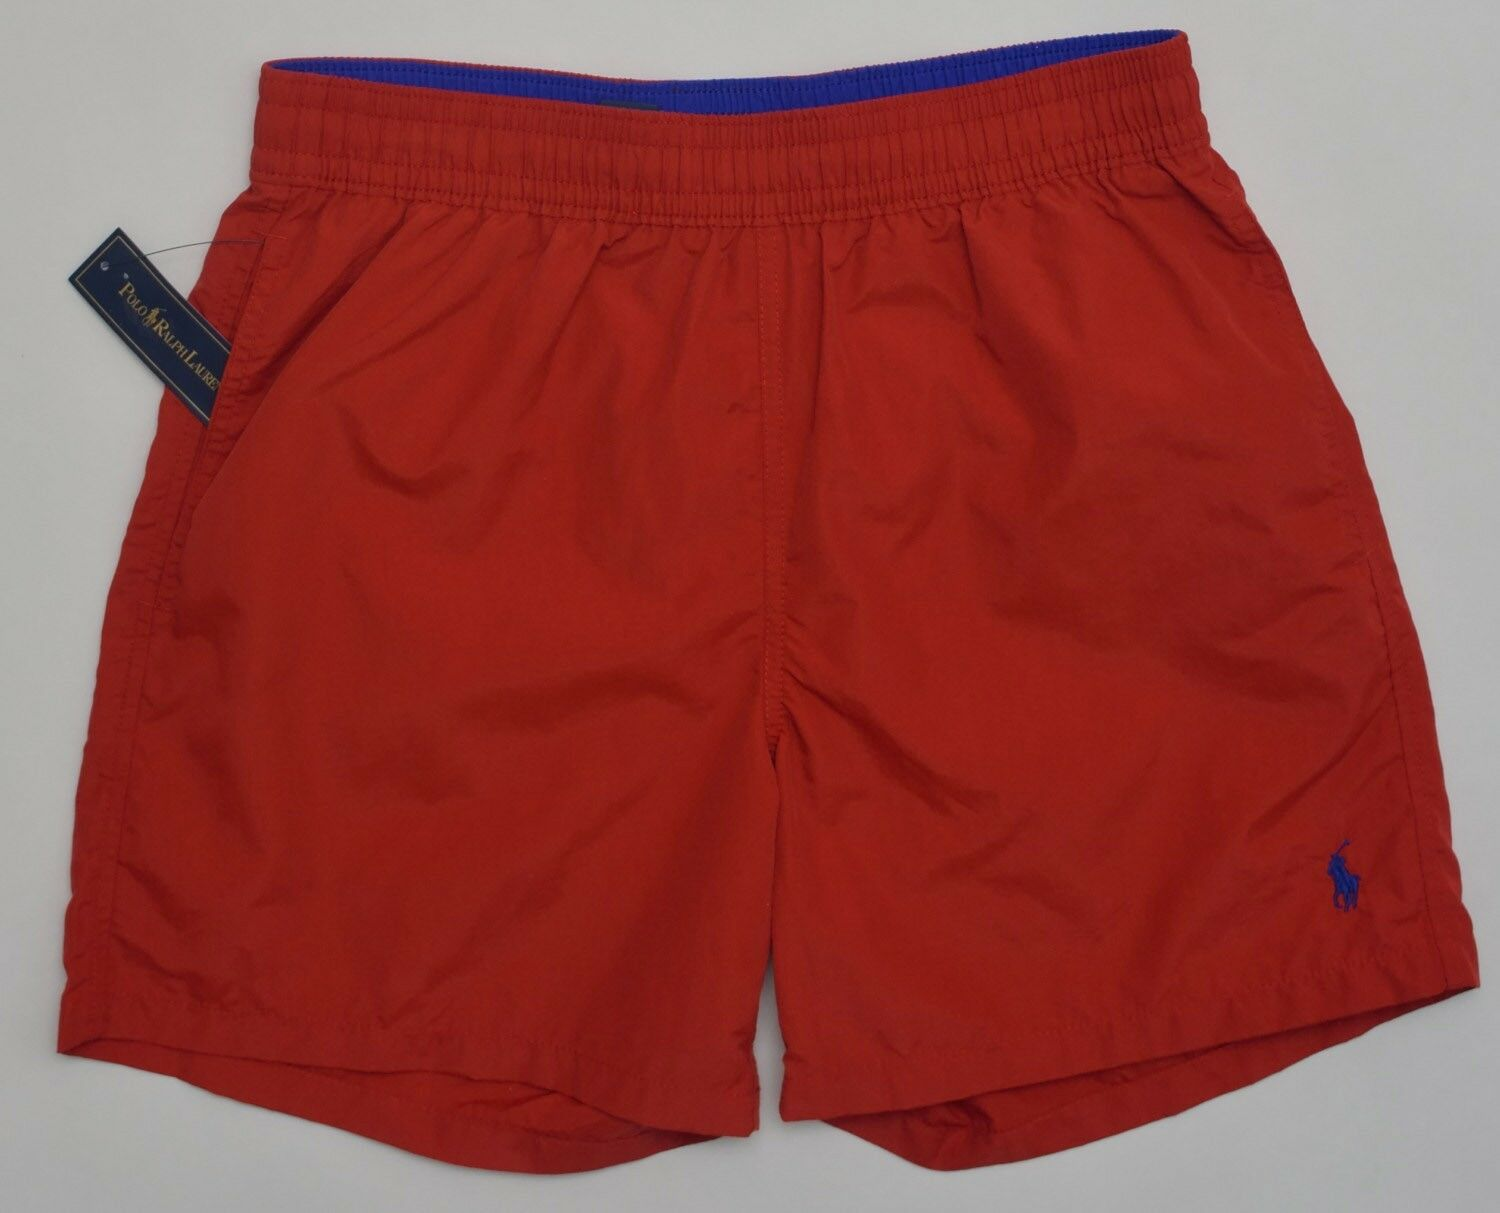 Men's POLO RALPH LAUREN Red Swimsuit Trunks Extra Large XL NWT  Royal bluee Pony